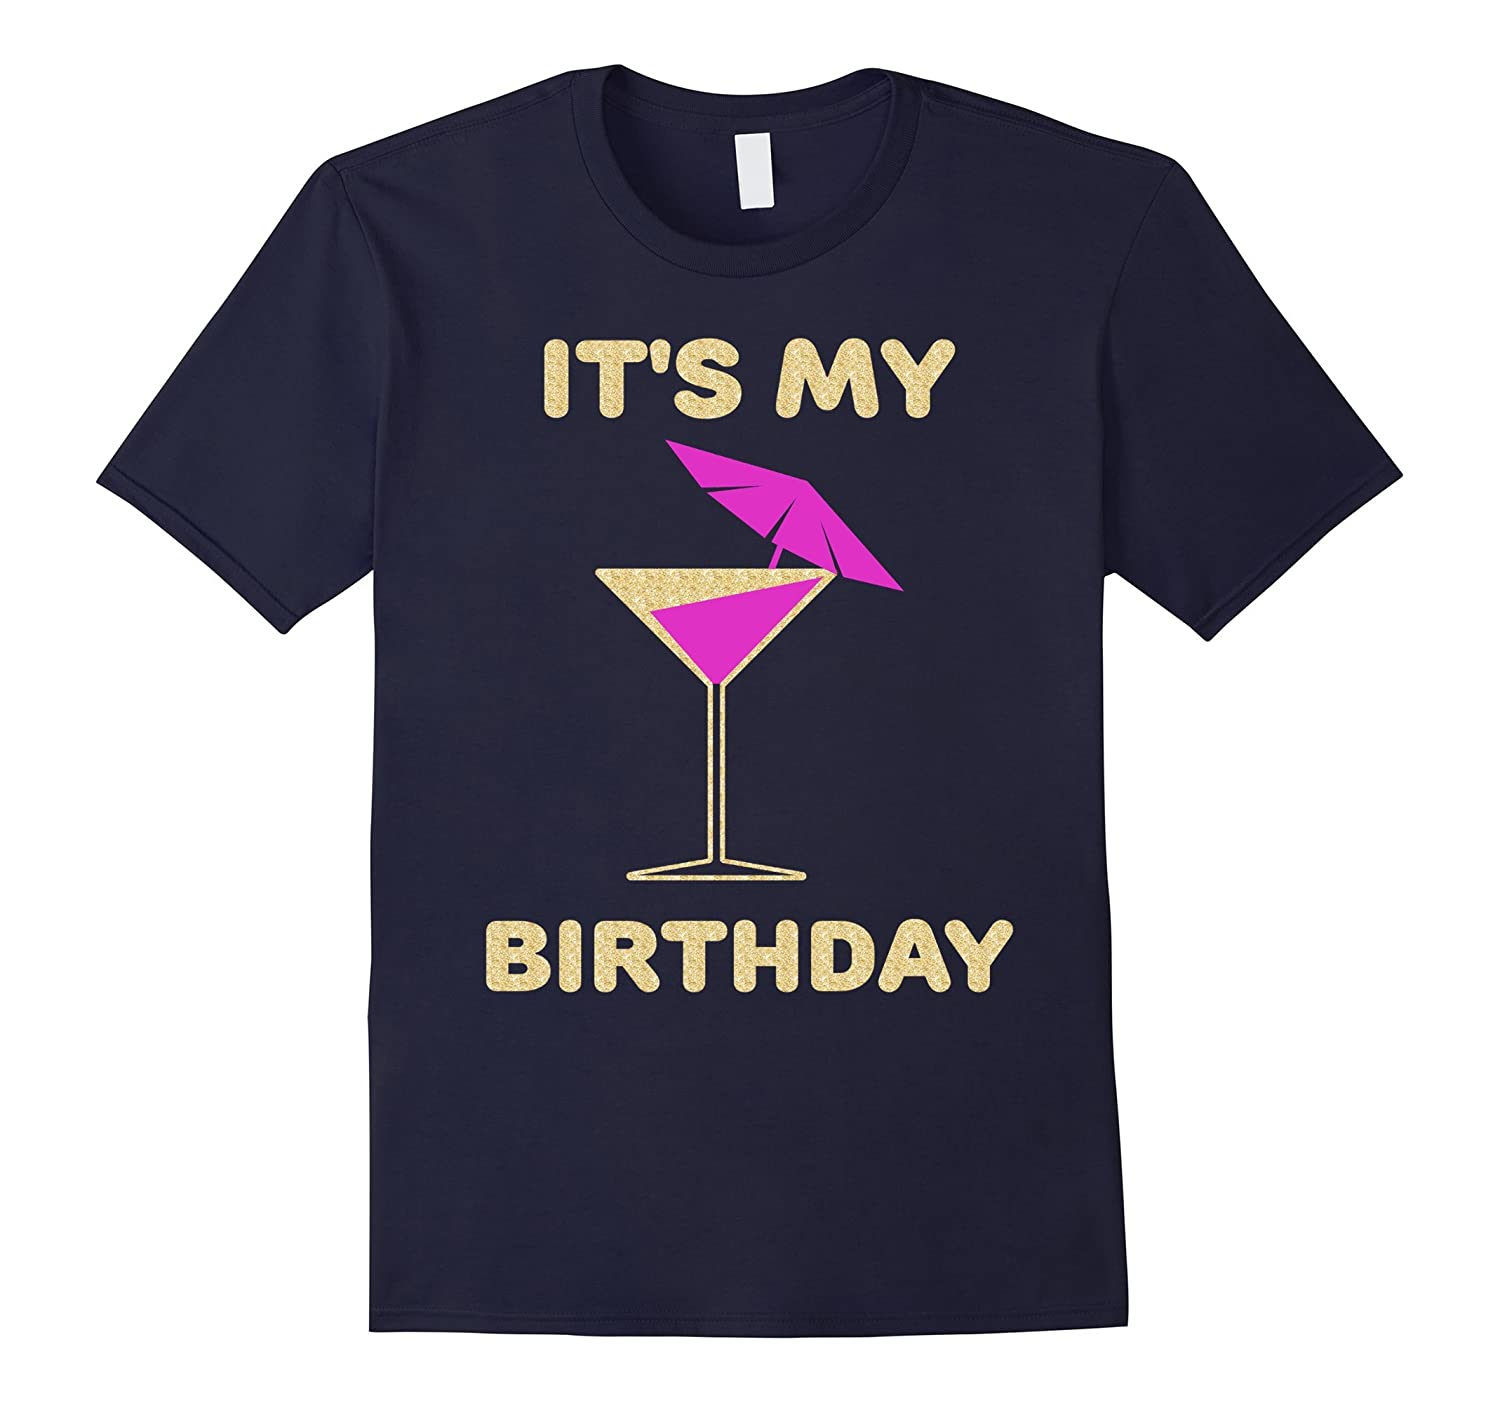 6ae9b0d70 It's My Birthday Shirt – Women – Gold Letters, Pink Cocktail-BN ...